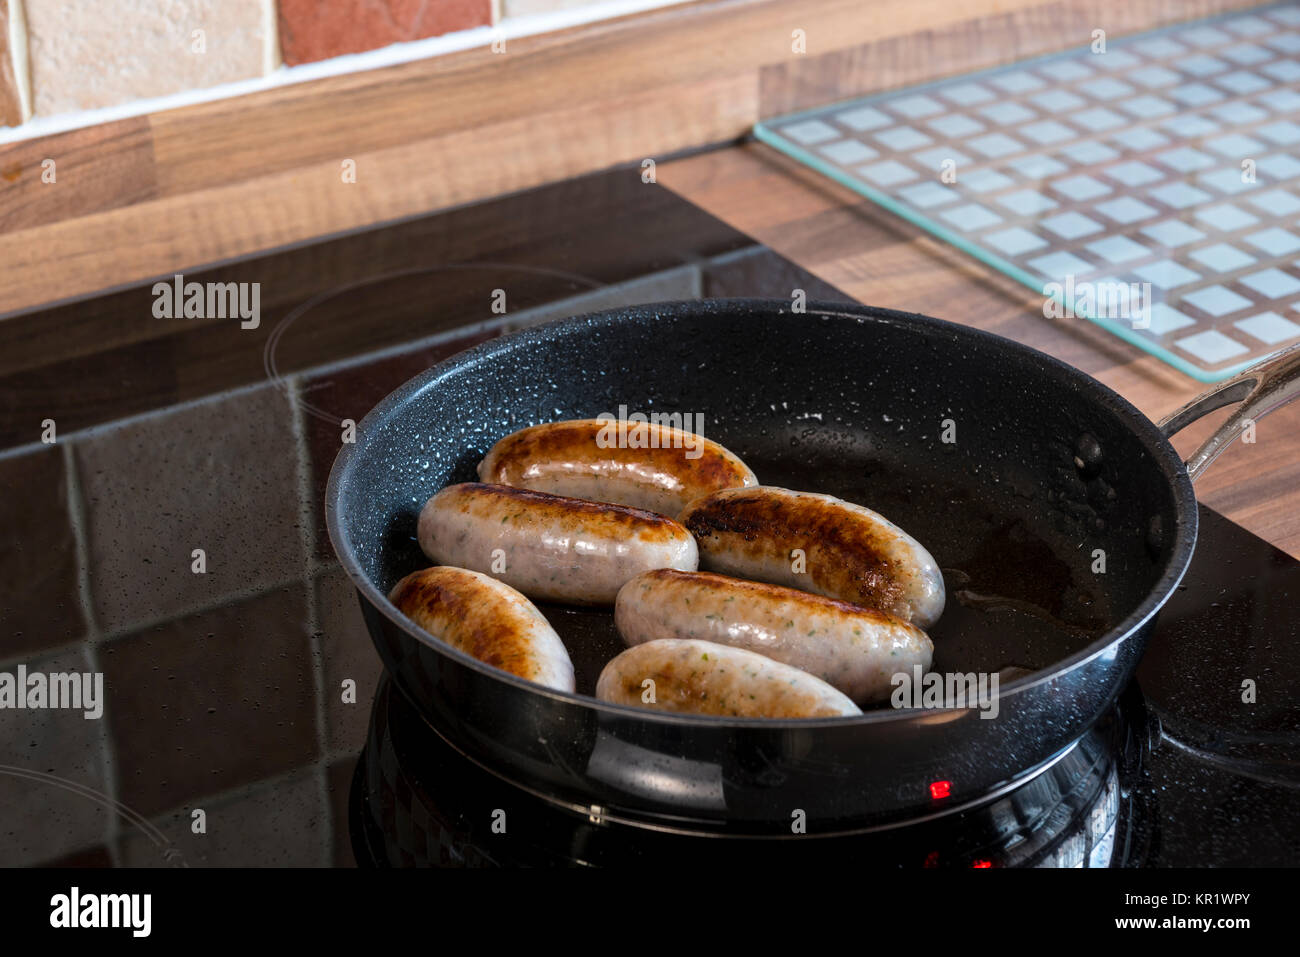 Cuisine Induction Sausages Cooking In A Frying Pan On An Induction Hob Stock Photo